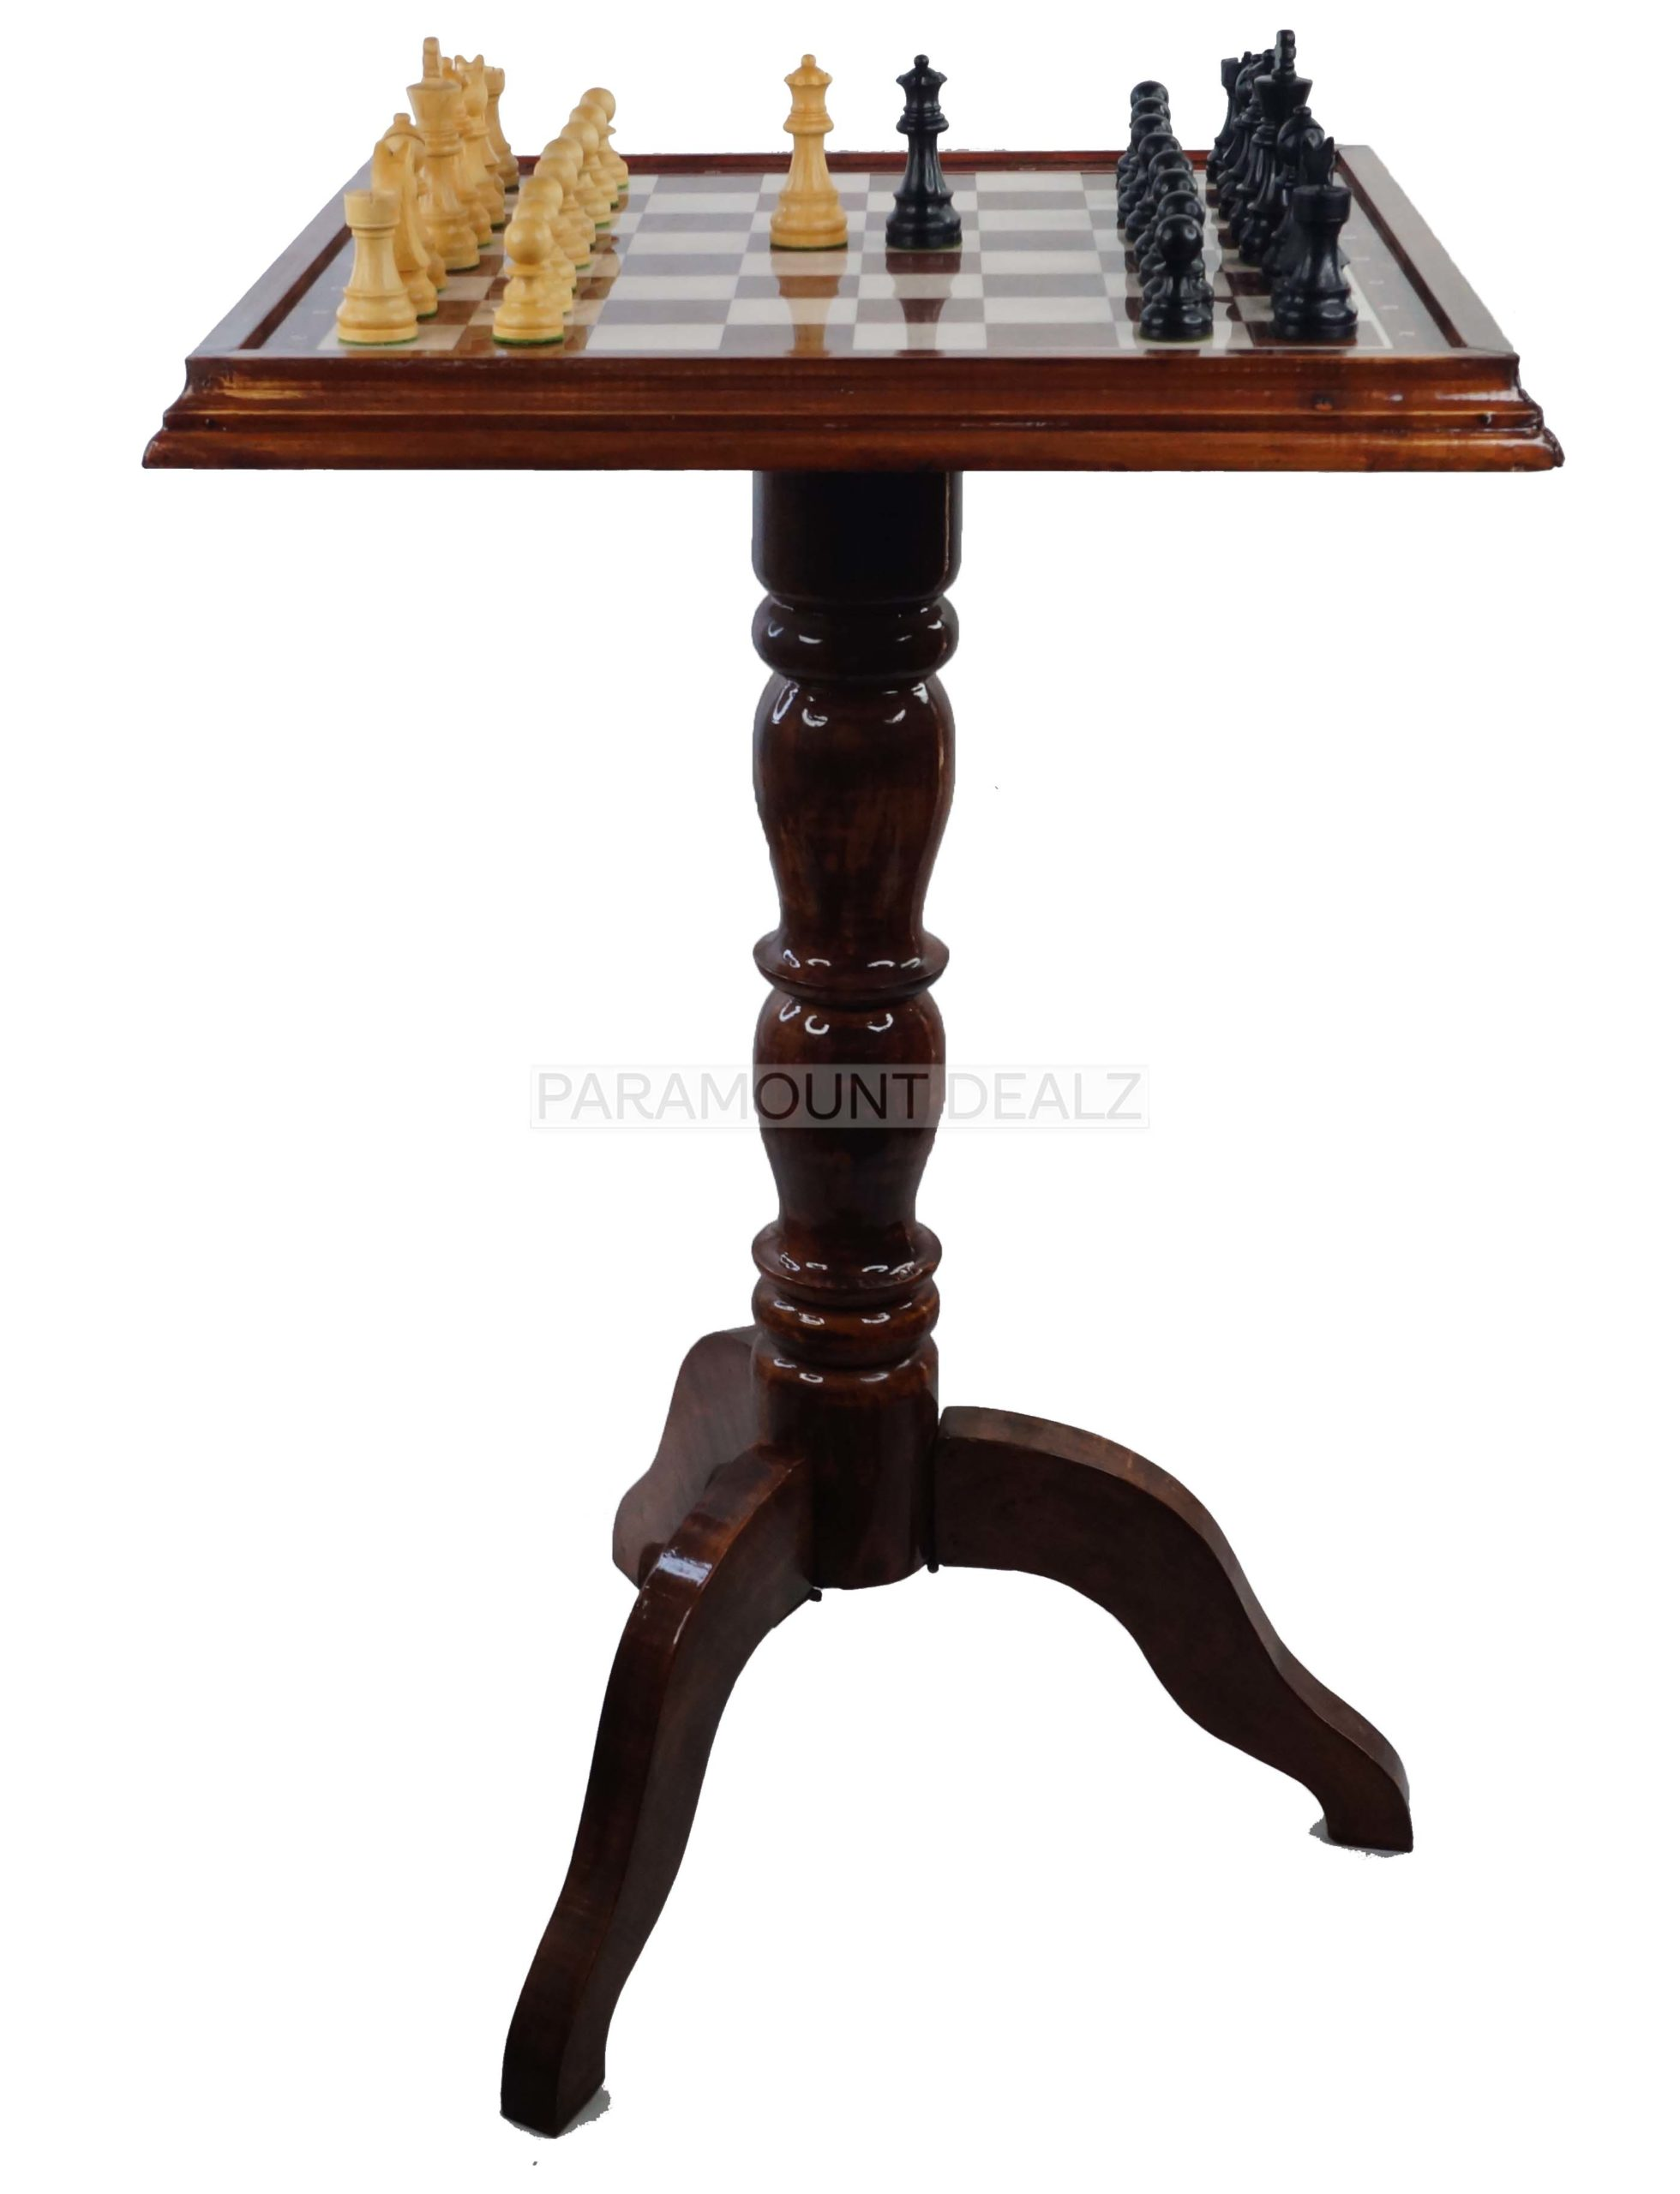 """WOODEN LUXURIOUS CHESS TABLE WITH 21"""" WOODEN LAMINATED BOARD (SOLID WOODEN FRAME) & WOODEN CHESS PIECES (Copy)"""